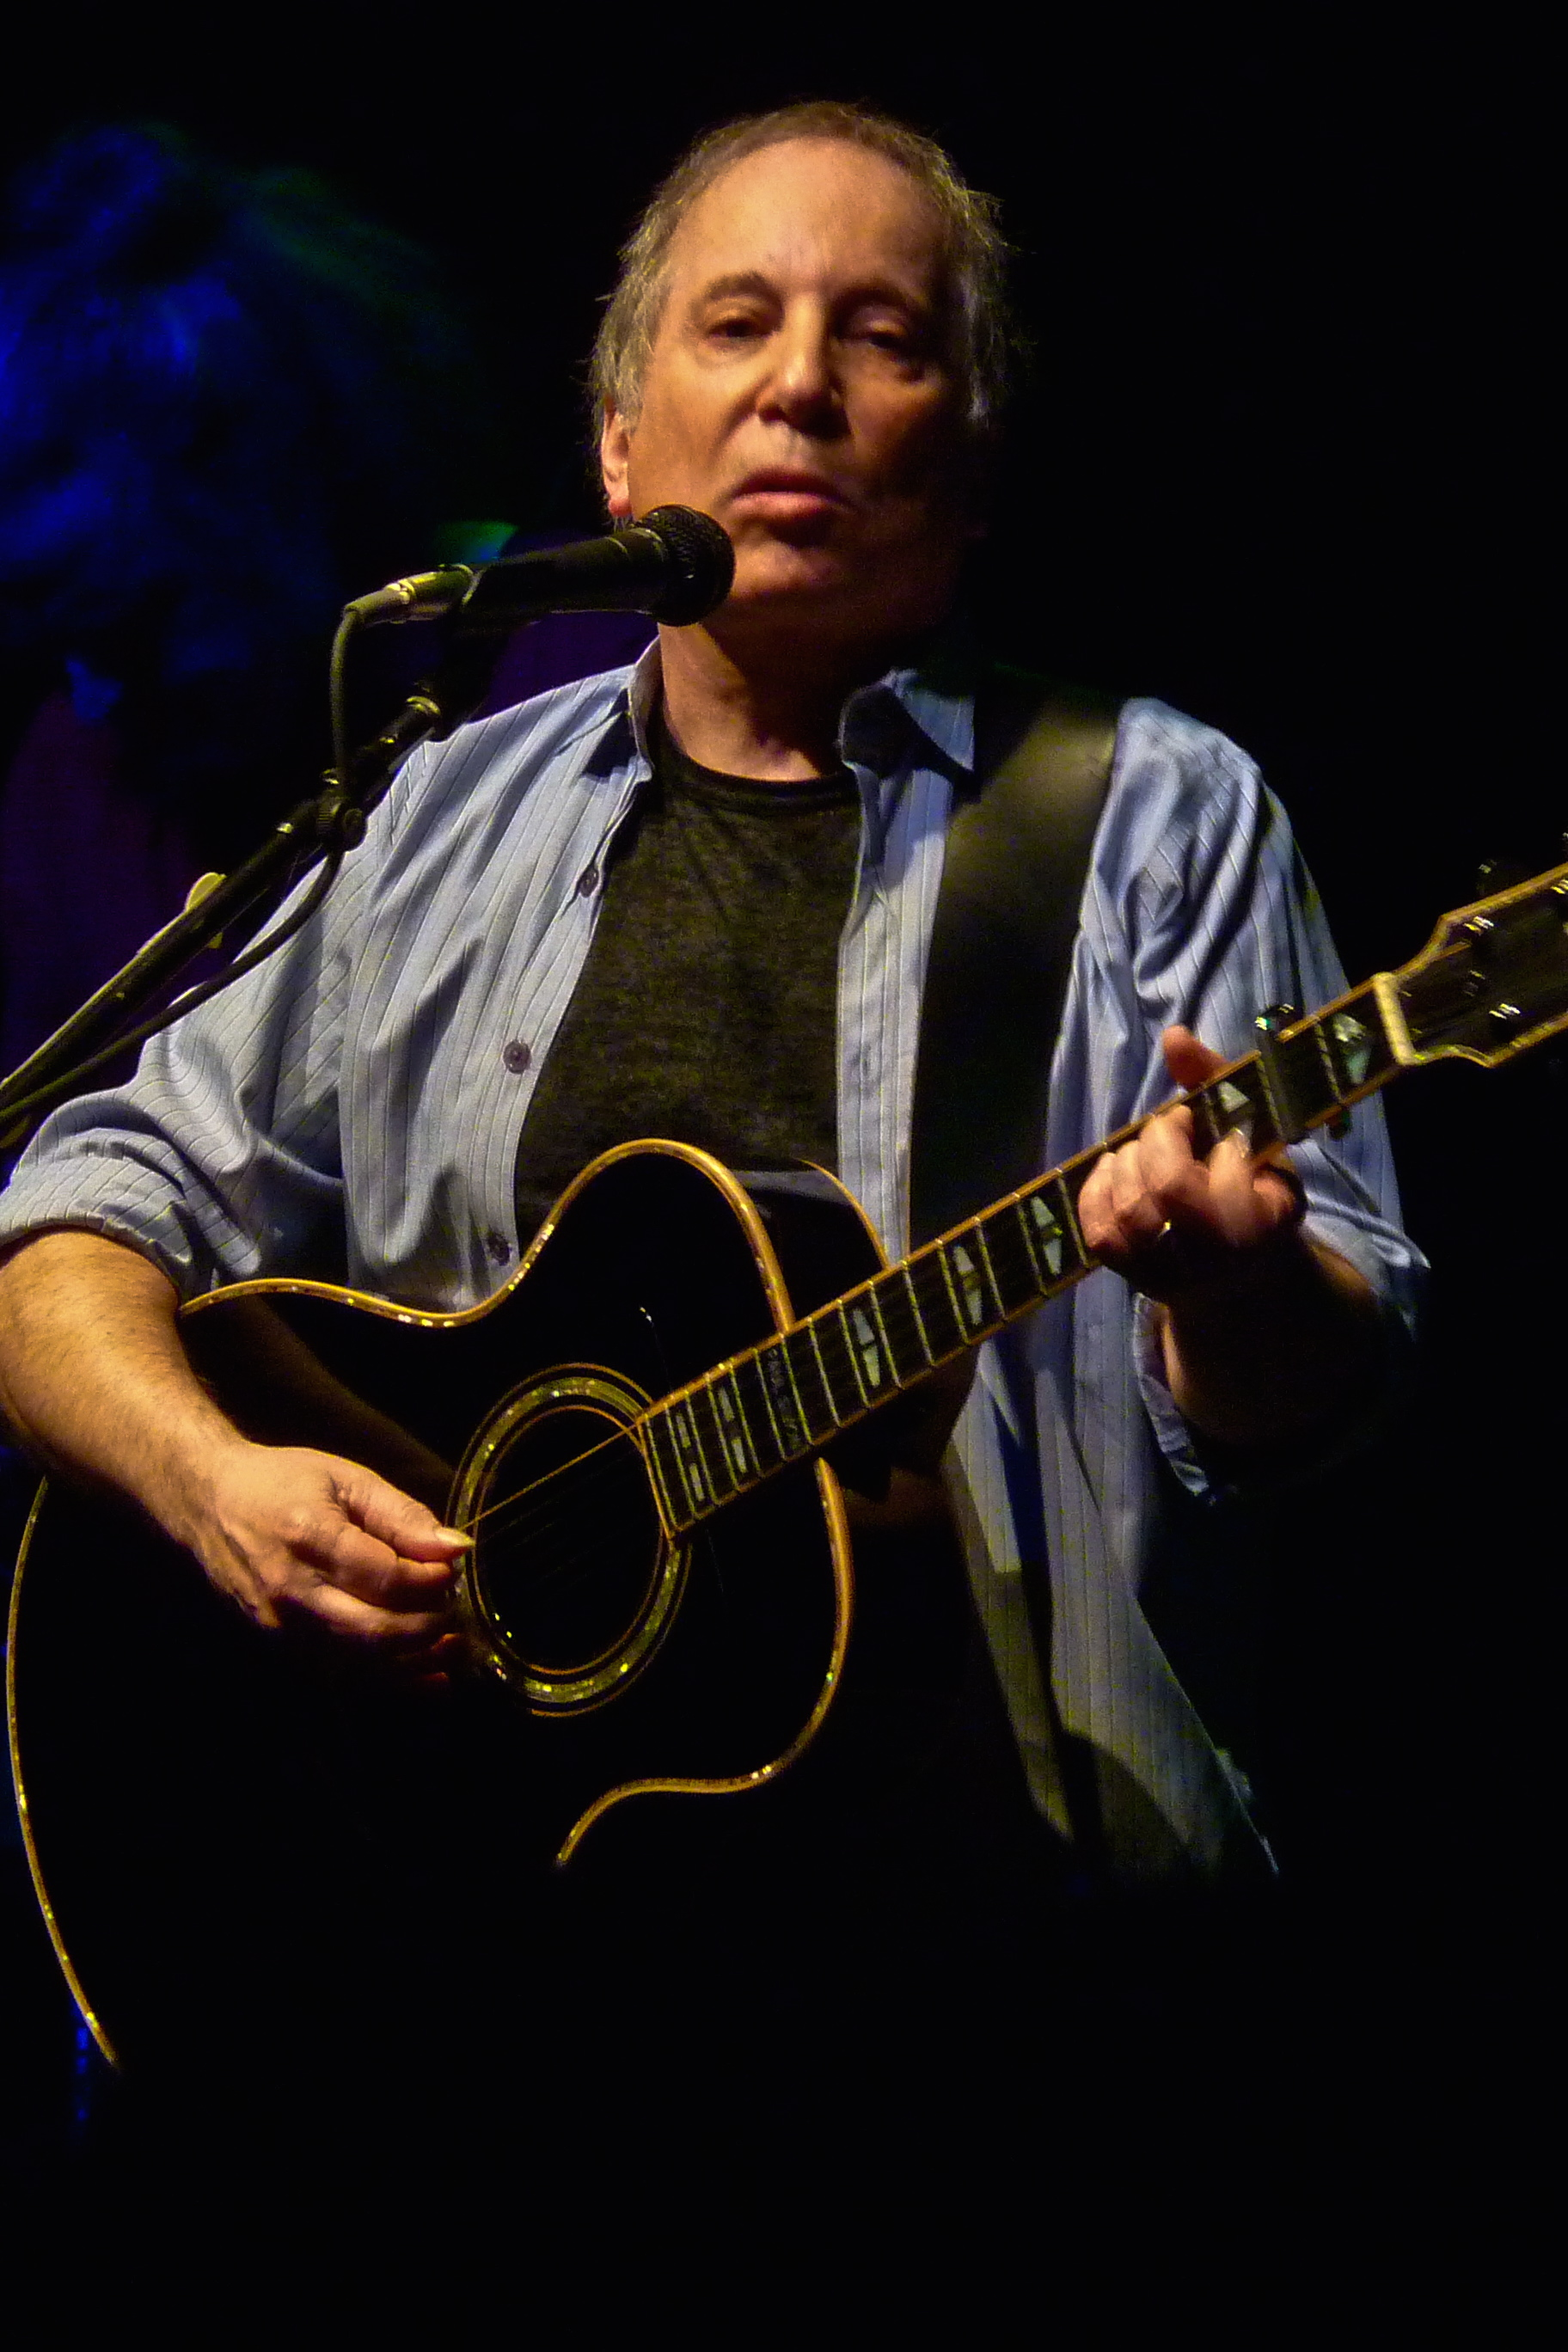 Folk singer Paul Simon is facing domestic charges after he and his wife were arrested in their New Canaan home over the weekend.